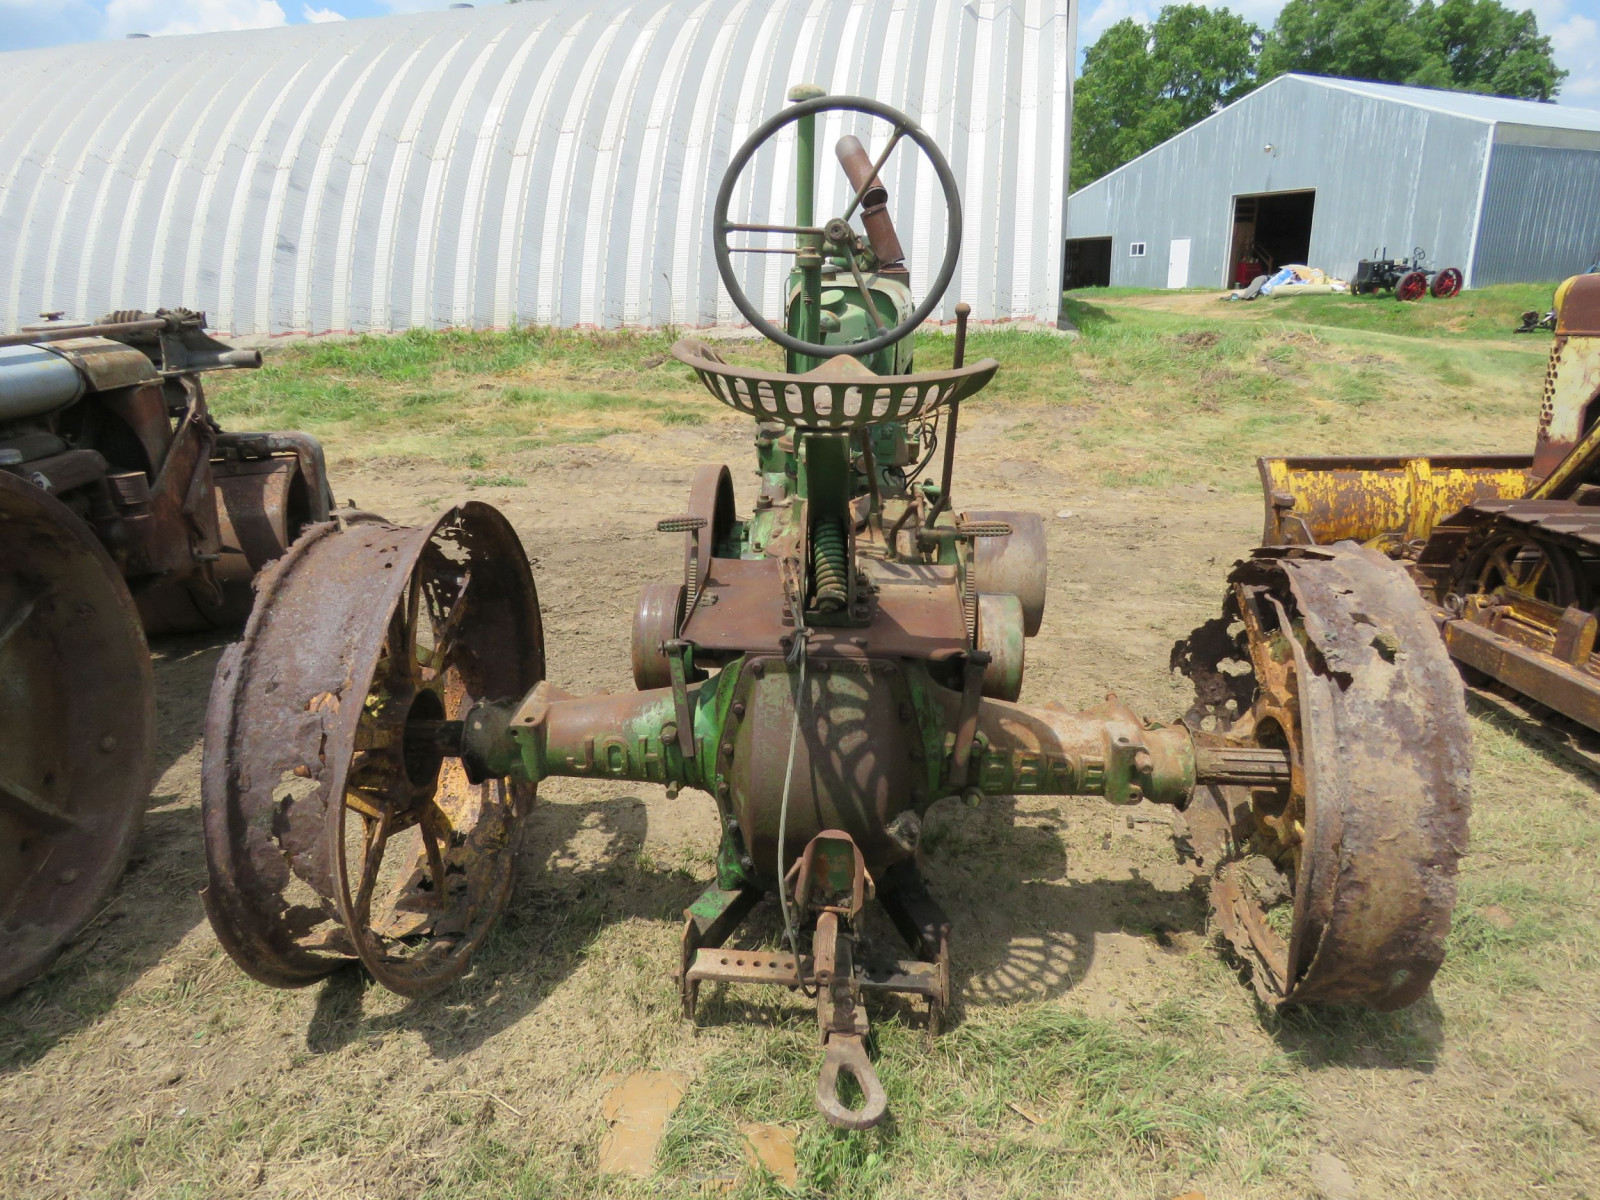 1936 John Deere Unstyled A Tractor - Image 4